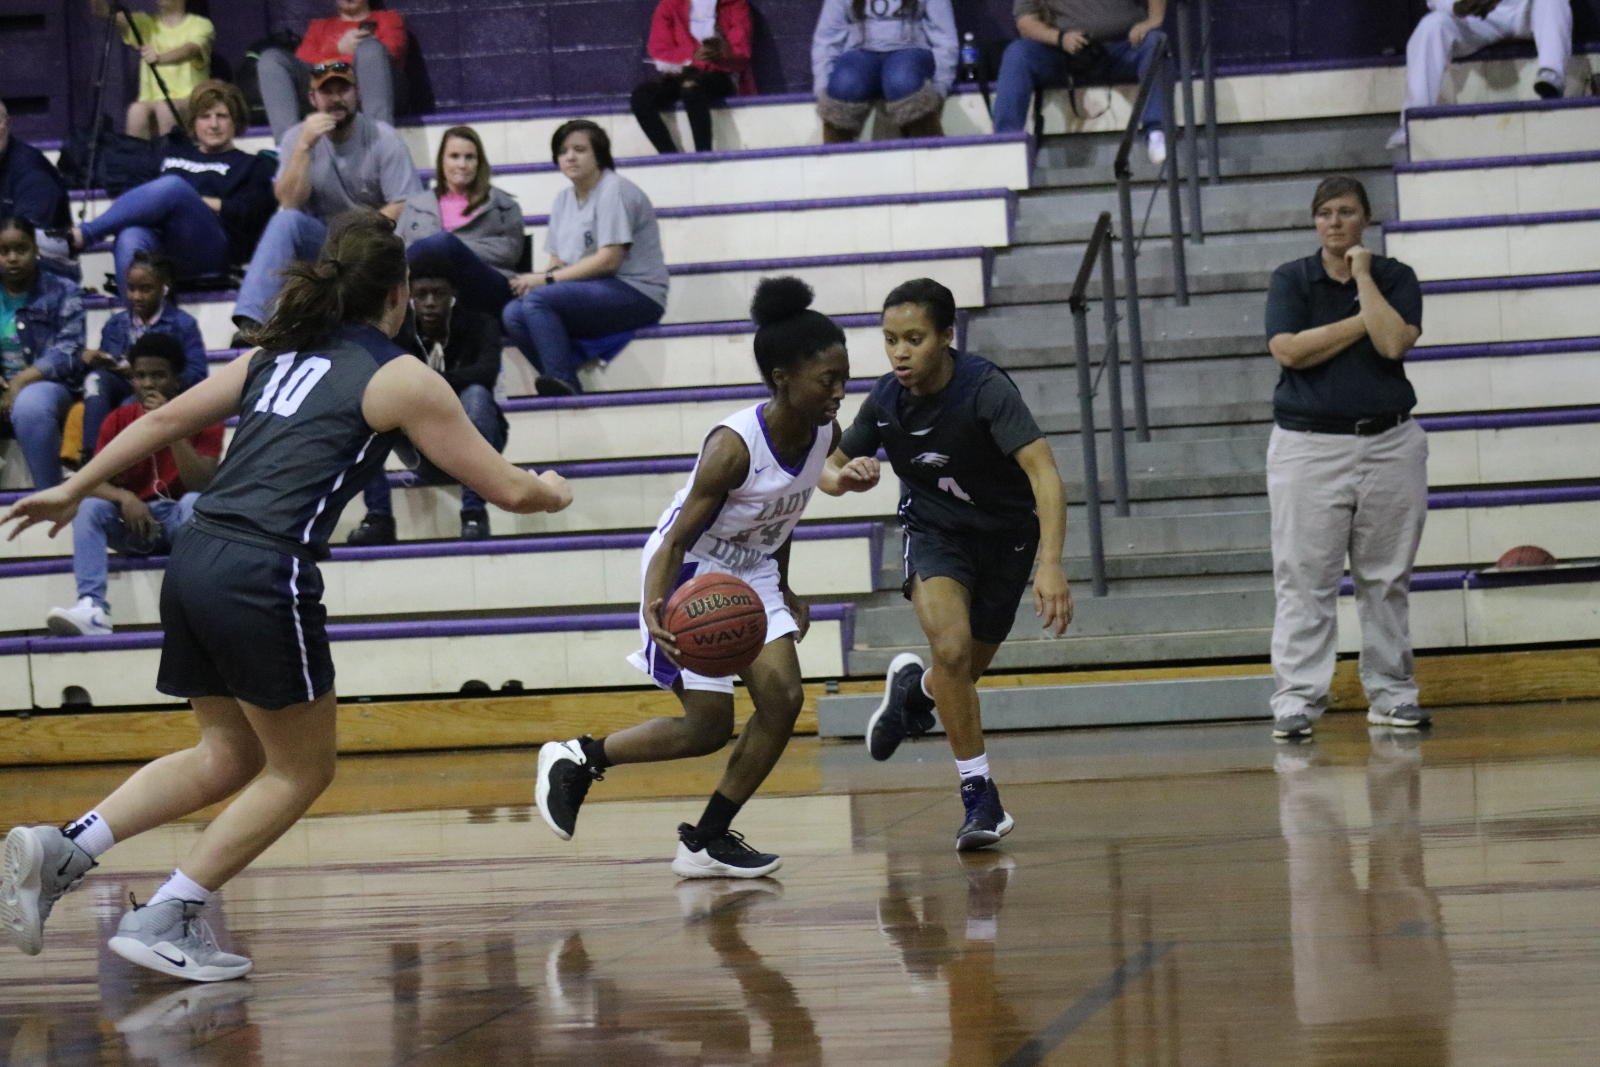 Lady Bulldogs grab a share of first place